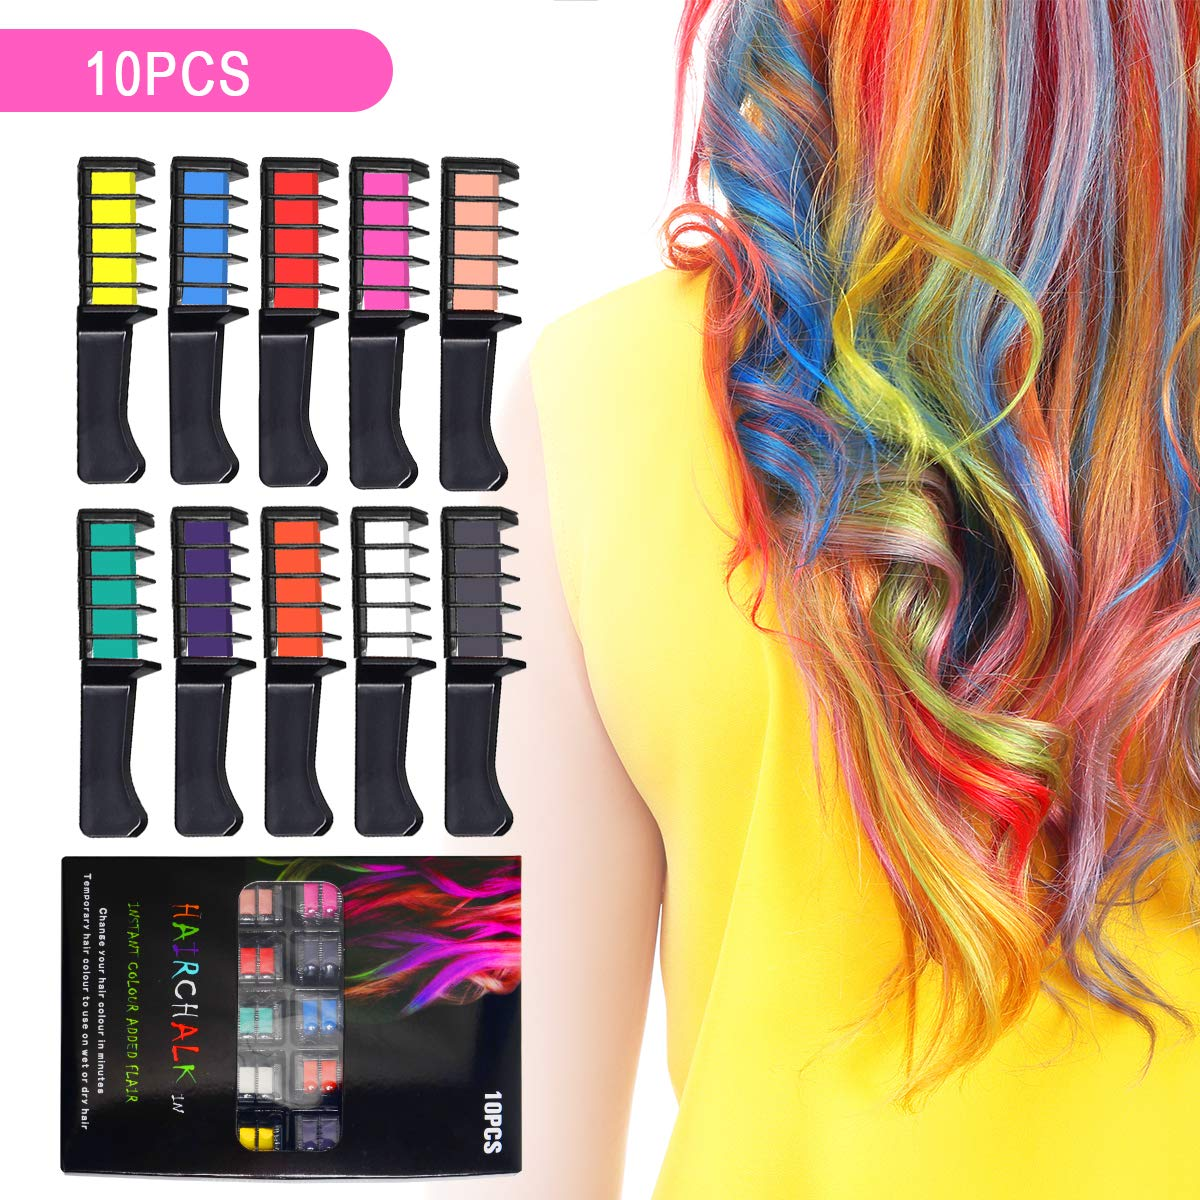 Ahier 10 Colors Hair Chalk Comb, Temporary Hair Chalk Set Hair Beauty Tool  for Kids Girls Women, Washable Non-toxic Hair Color for Dye Hairs